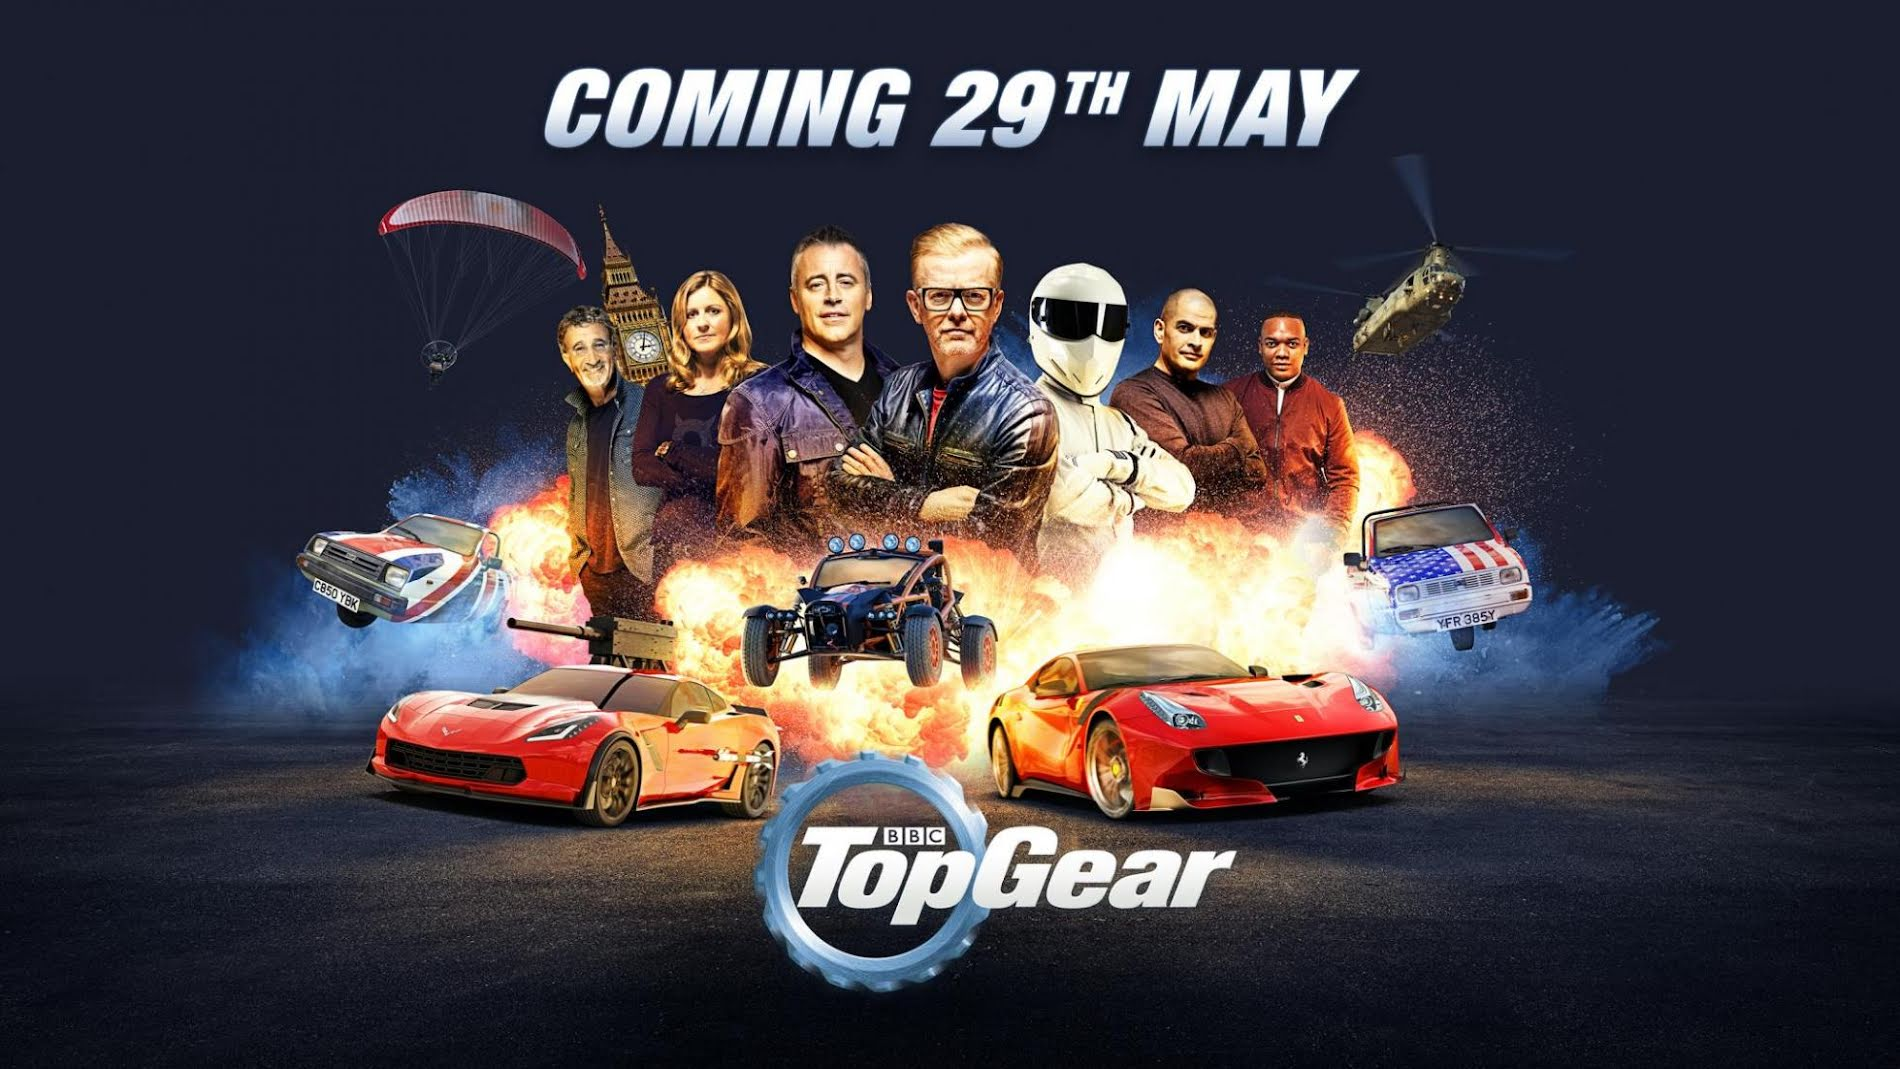 FlySpain Instructor helps kick off New Top Gear show this weekend